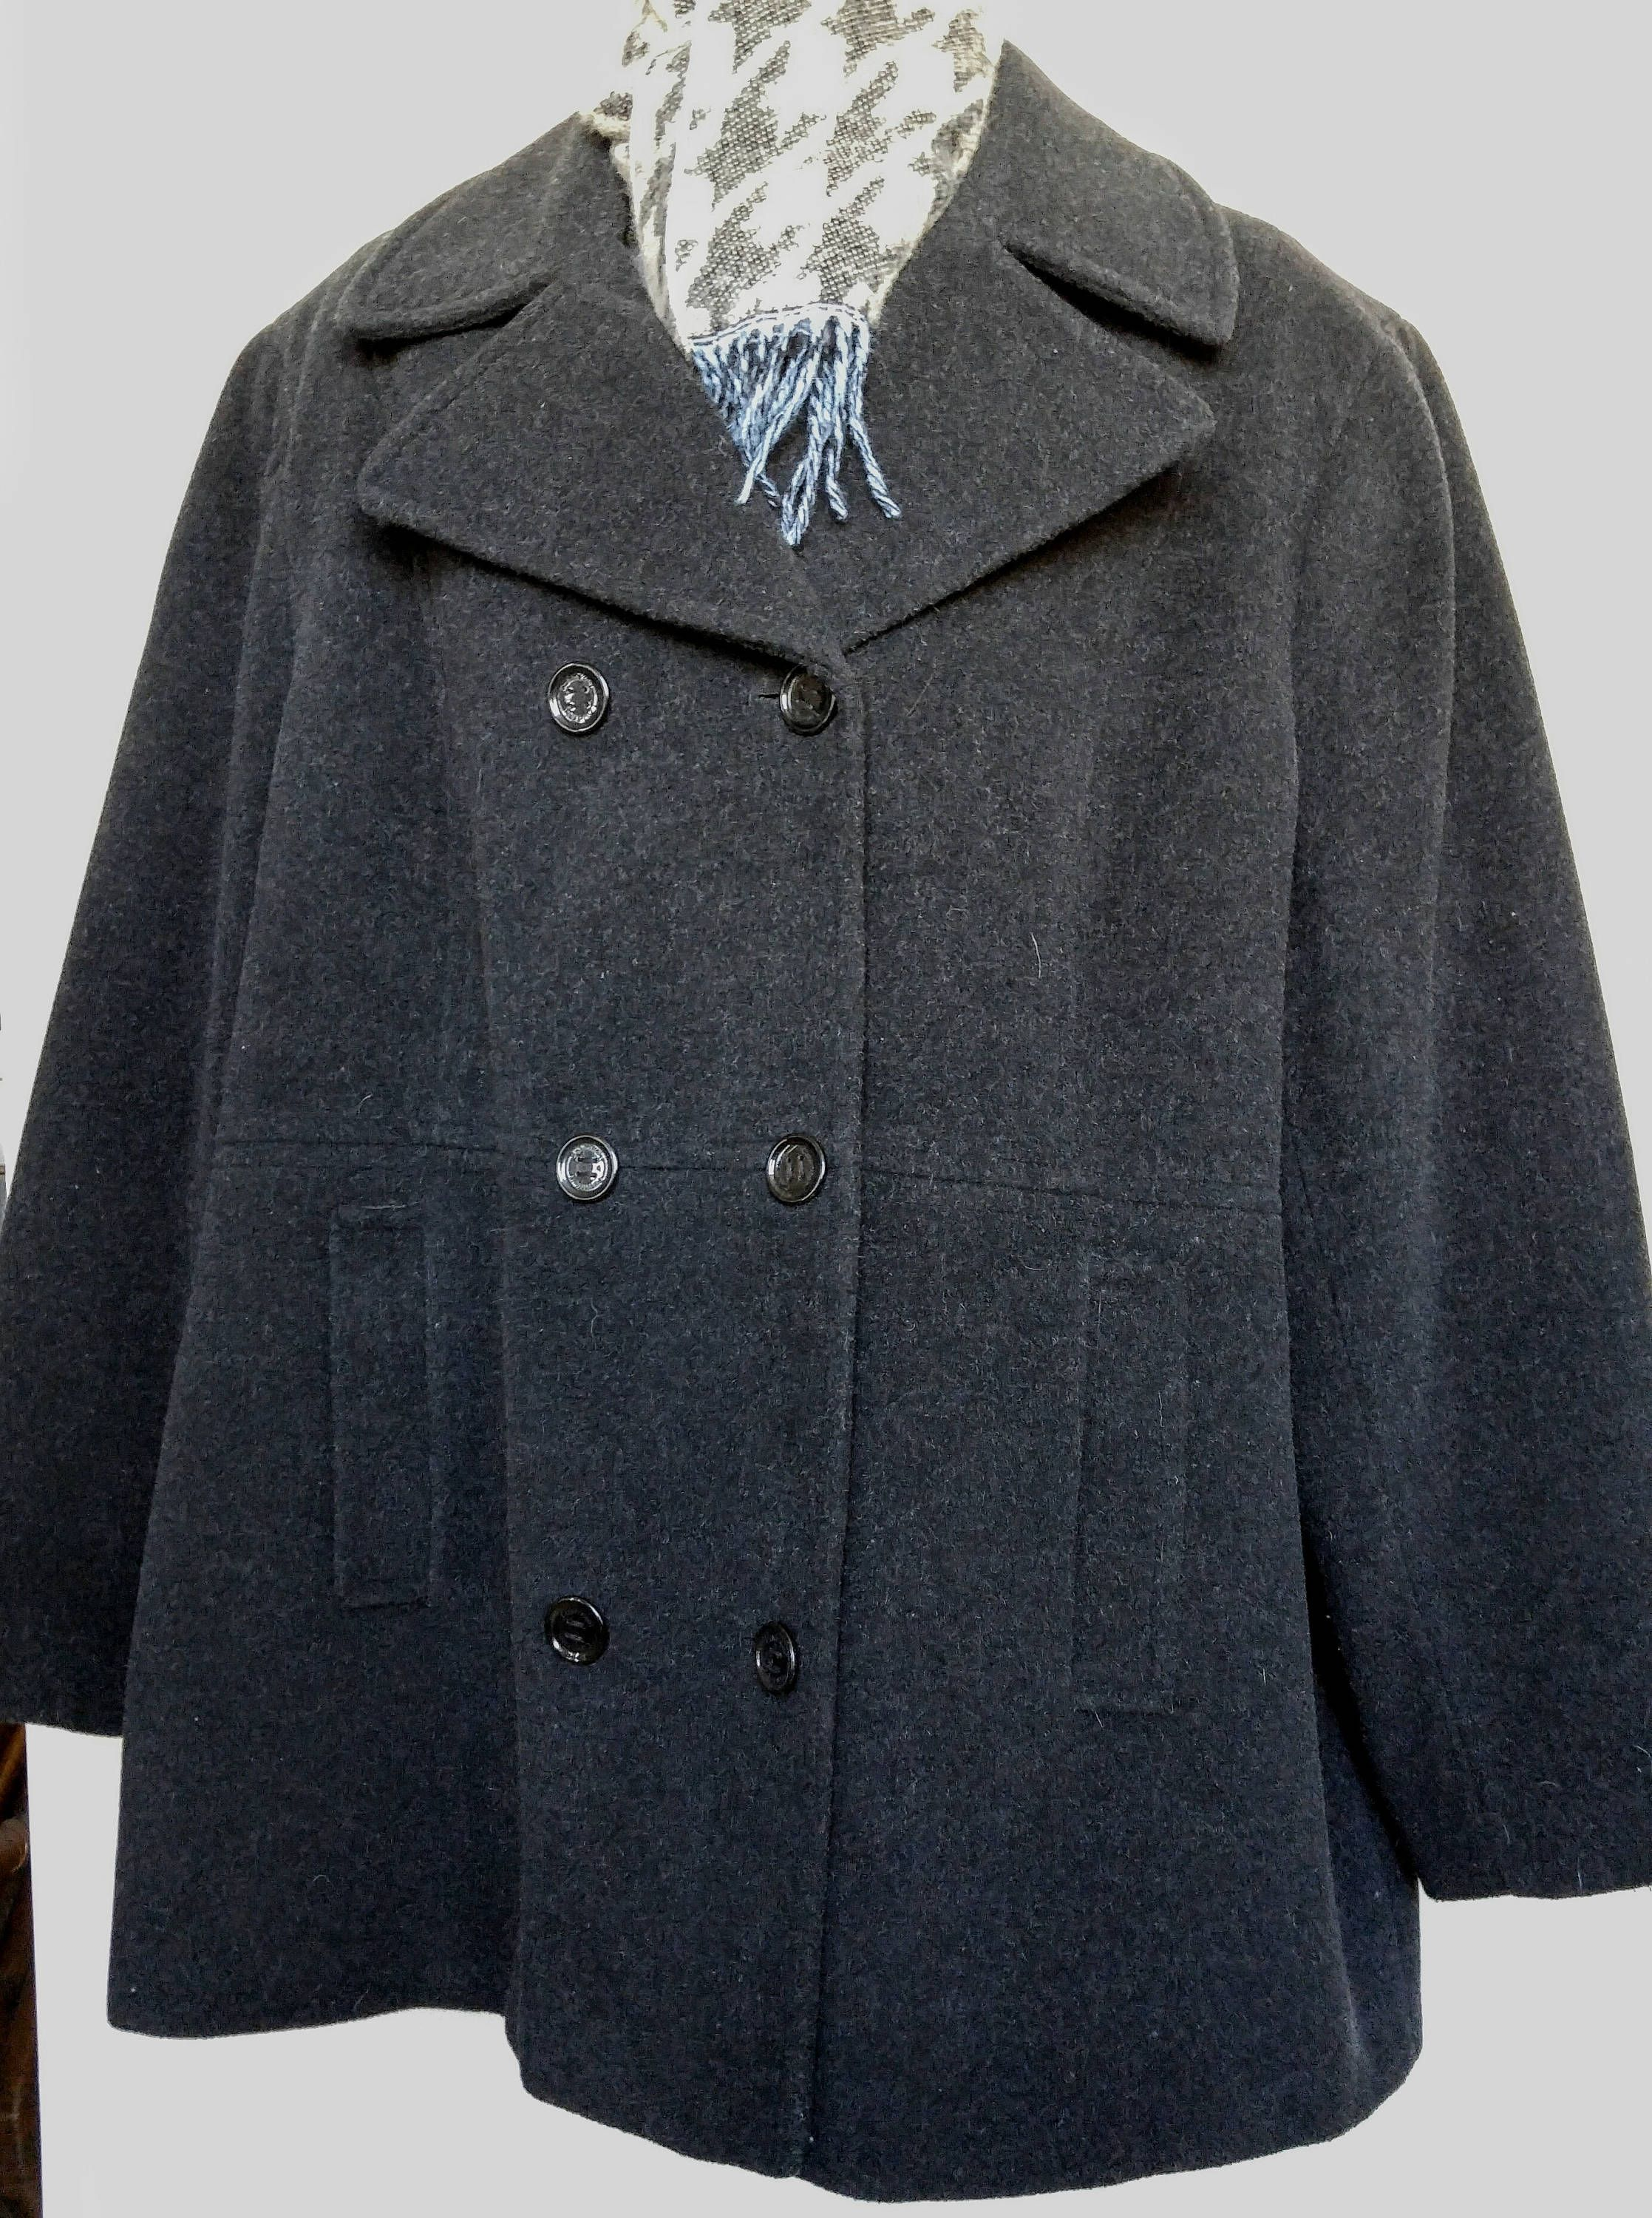 8d86a220490 Womens Plus 3X CALVIN KLEIN Gray Peacoat Jacket Wool blend Pea Coat 52 EUC  Free Scarf by ValsValueVintage on Etsy